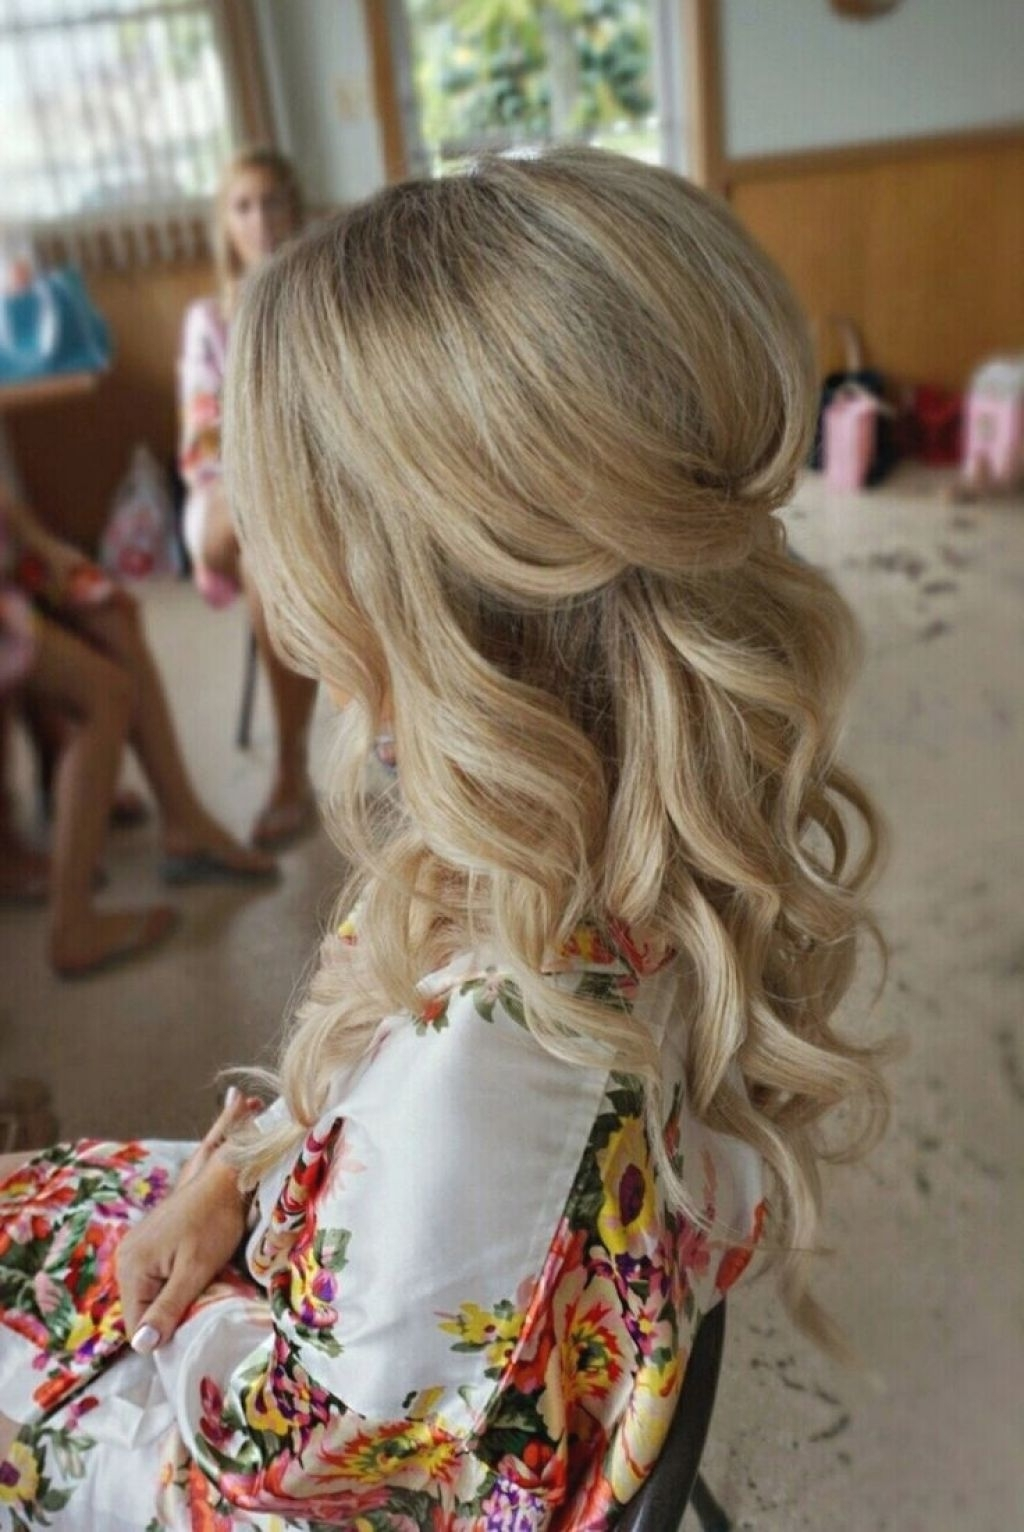 Trendy Wedding Hairstyles For Bridesmaids Throughout √ 24+ Awesome Wedding Hairstyles For Bridesmaids: Wedding (View 12 of 15)